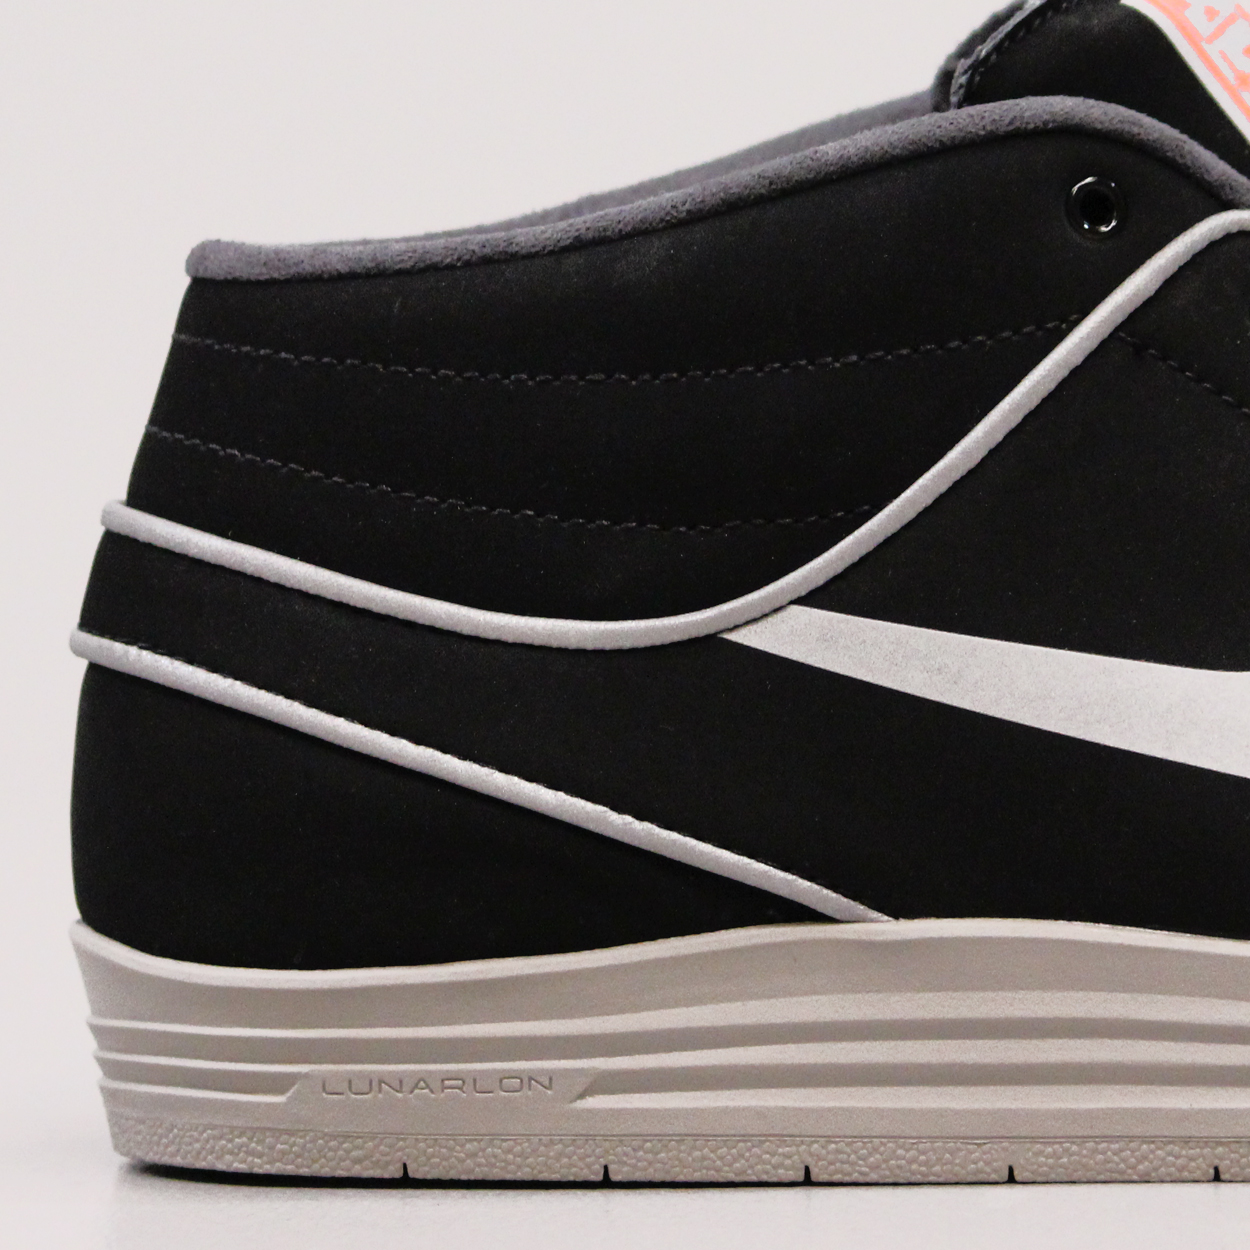 408de827831b The midtop Stefan Janoski shoe with a hit of the Lunar OneShot in there for  good measure. Nike SB